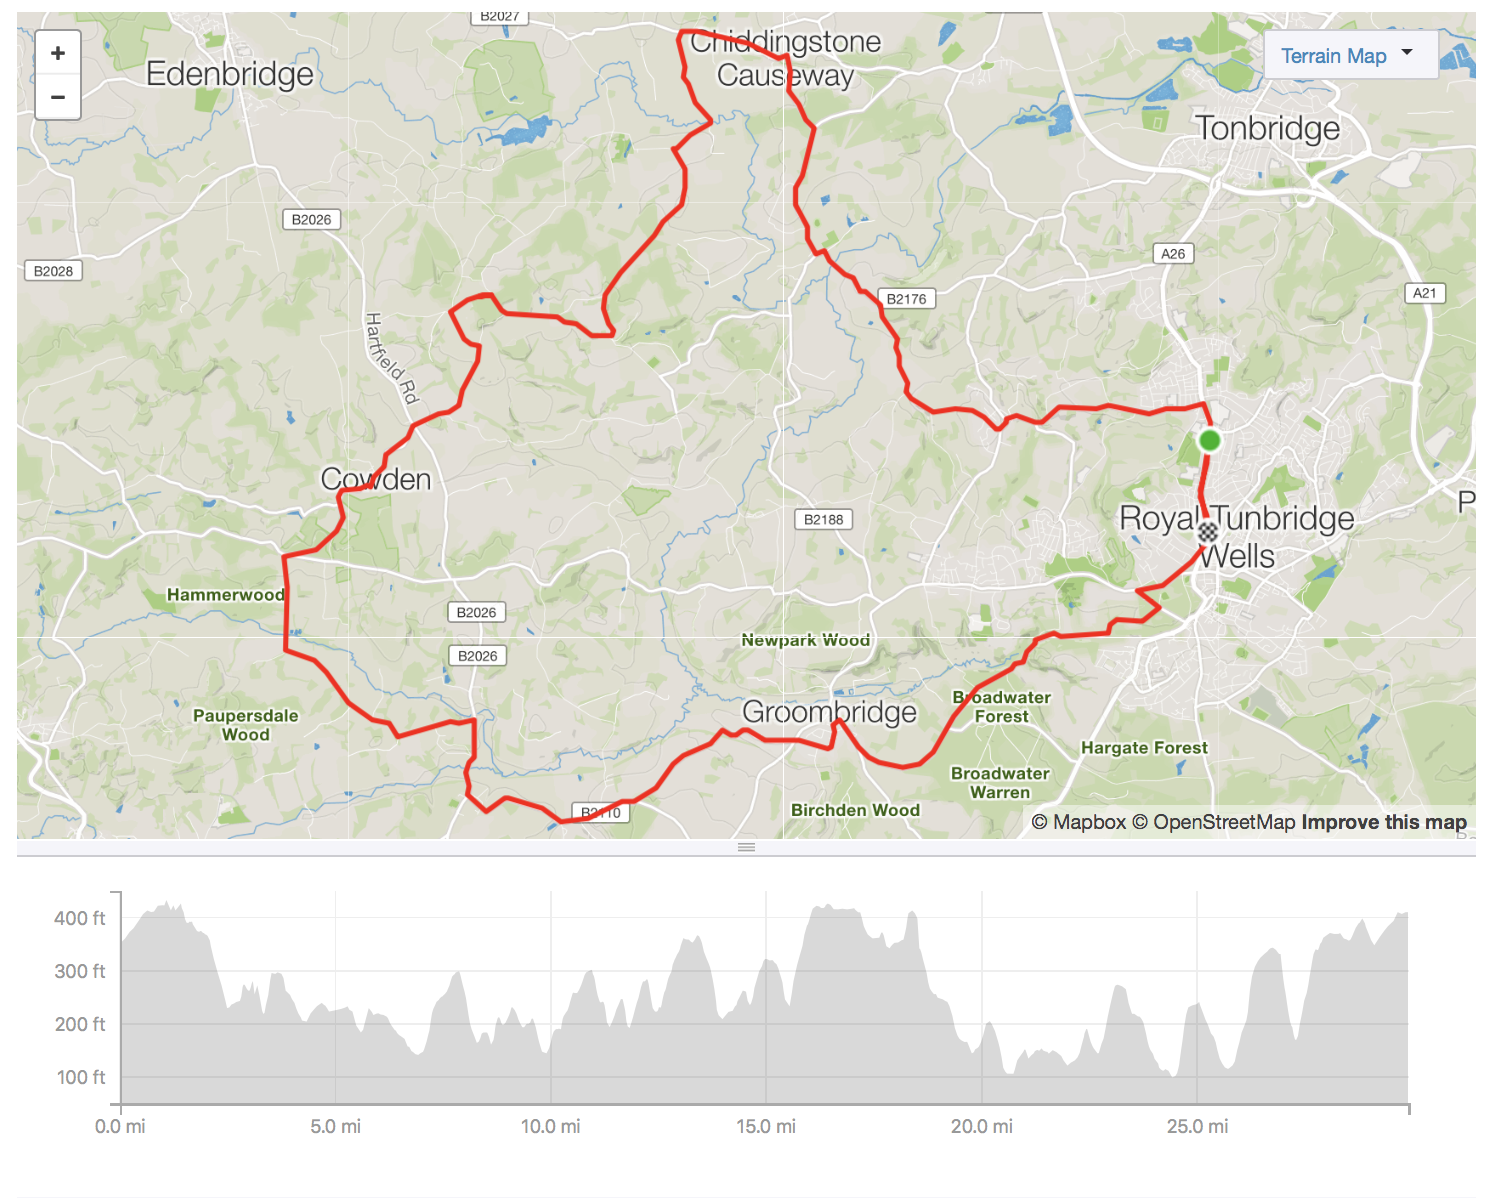 Download the route here: https://www.strava.com/routes/15030000